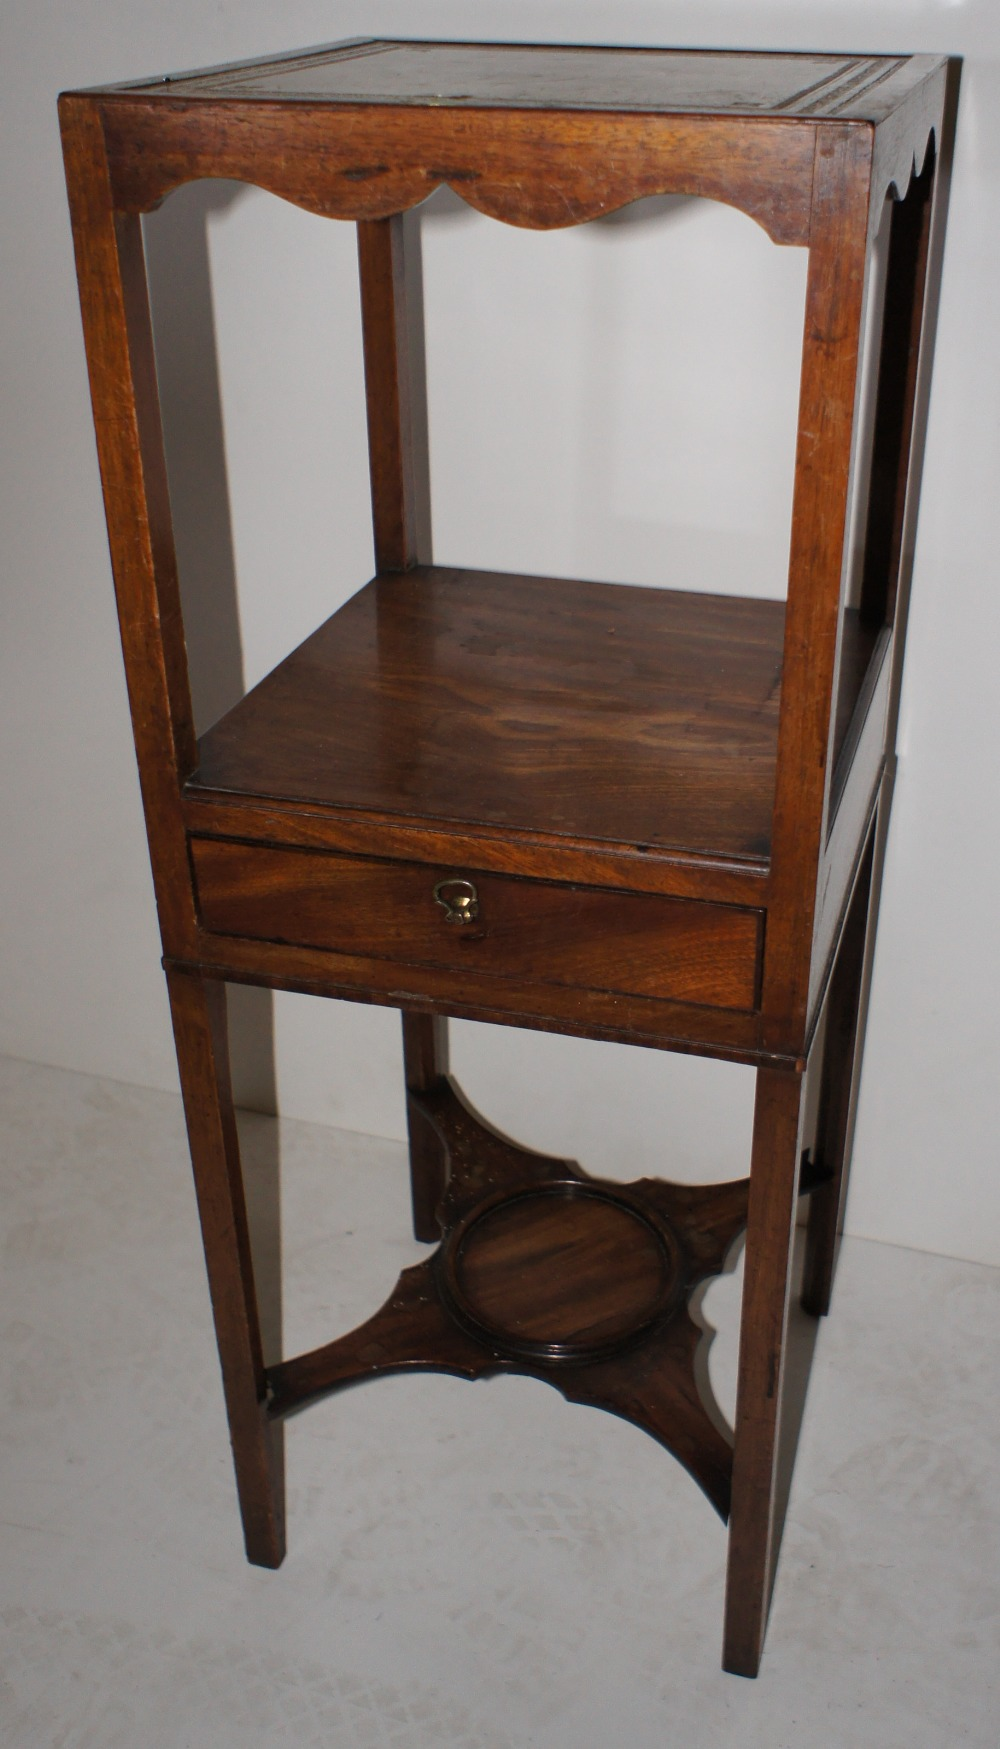 Lot 652 - NV- a small mahogany three tier washstand with a small drawer